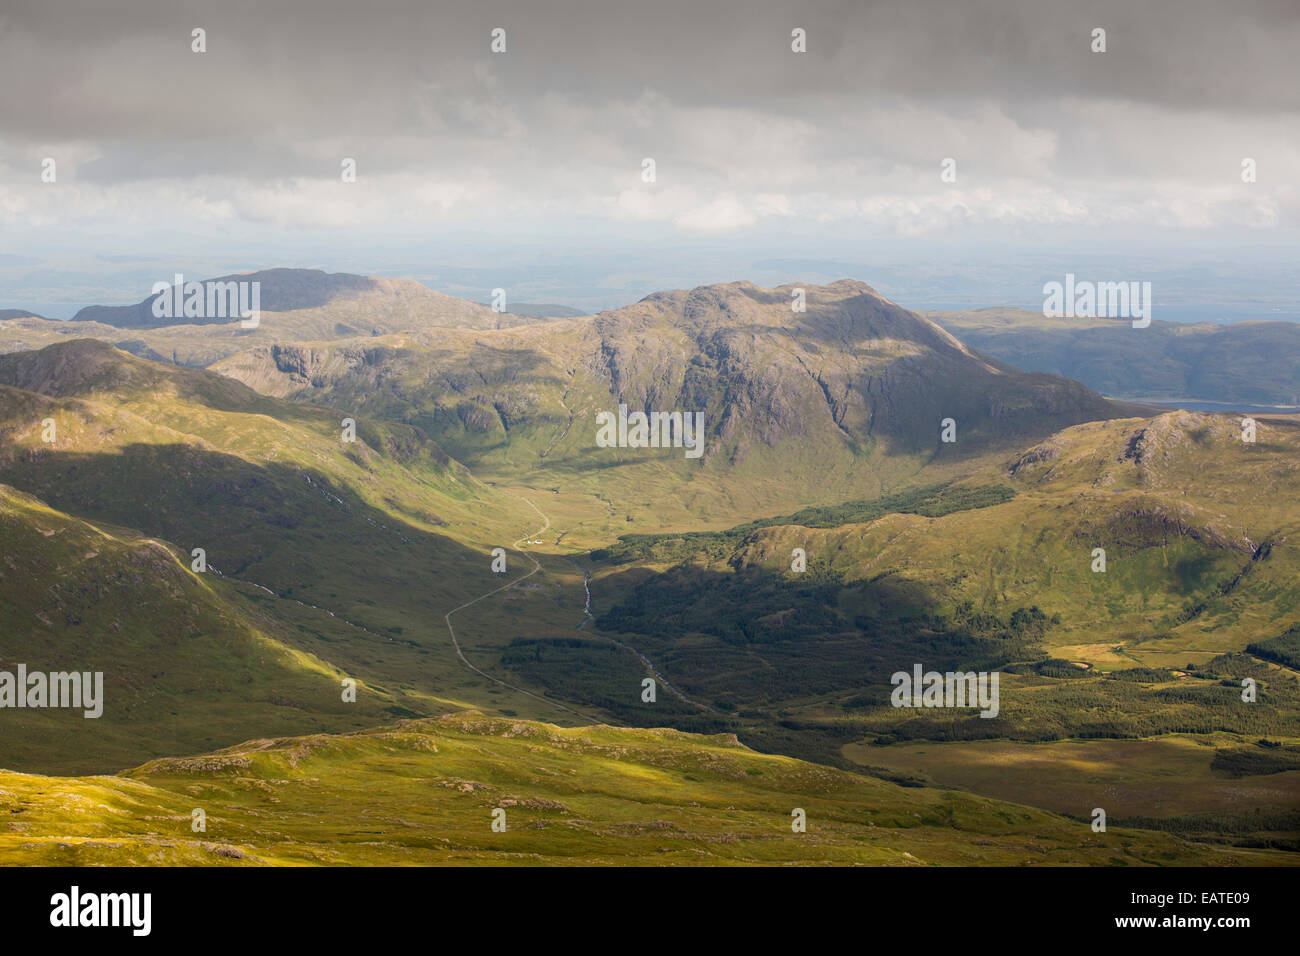 Looking towards peaks on the Ross of Mull from the summit of Ben More on Mull, Scotland, UK. - Stock Image